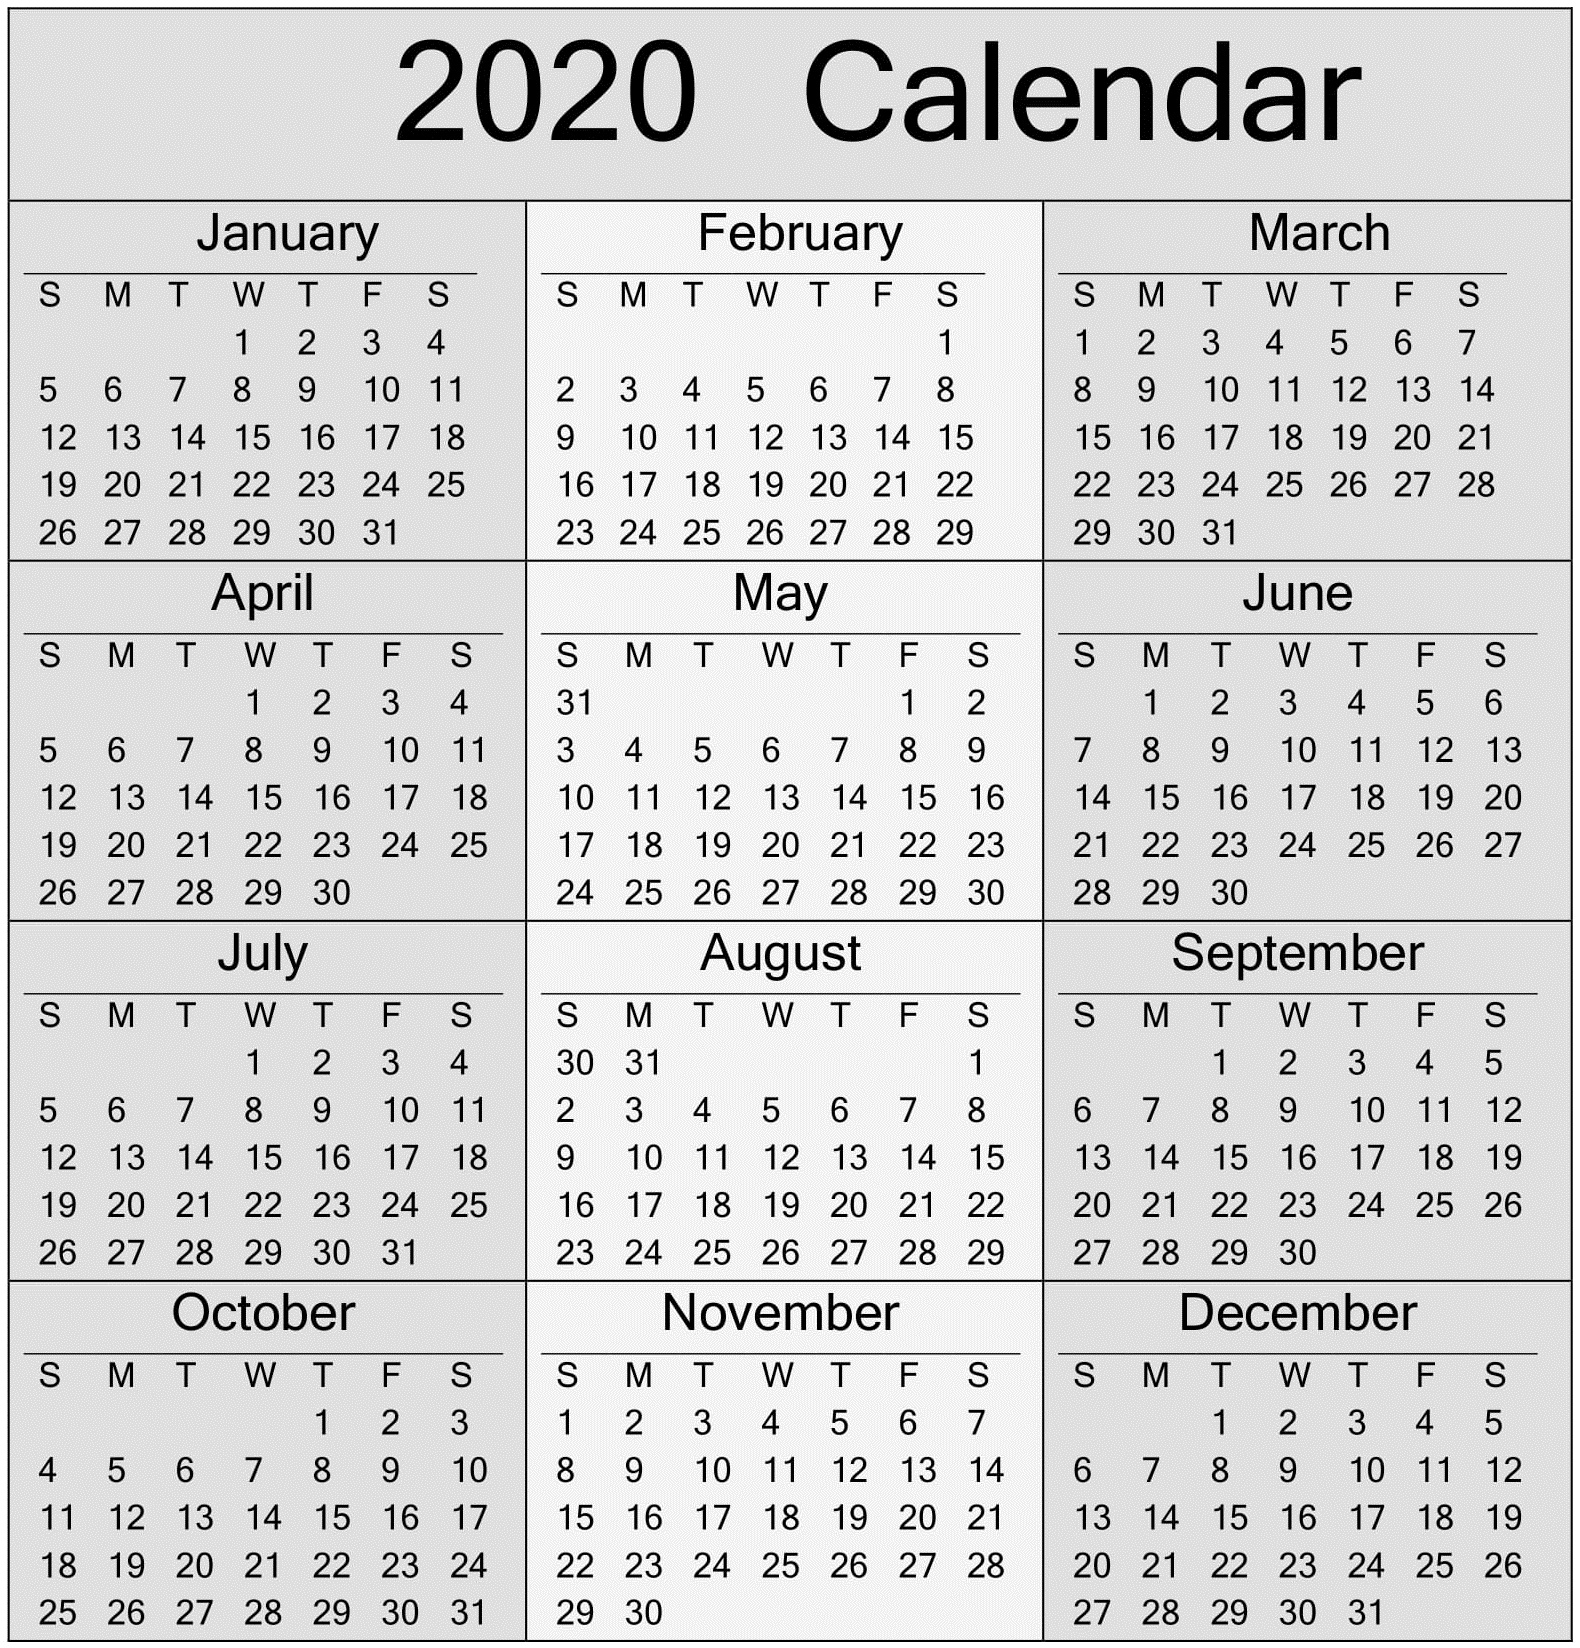 Free Printable Yearly 2020 Calendar And Holiday Templates inside Online Free Printable Calendar 2020